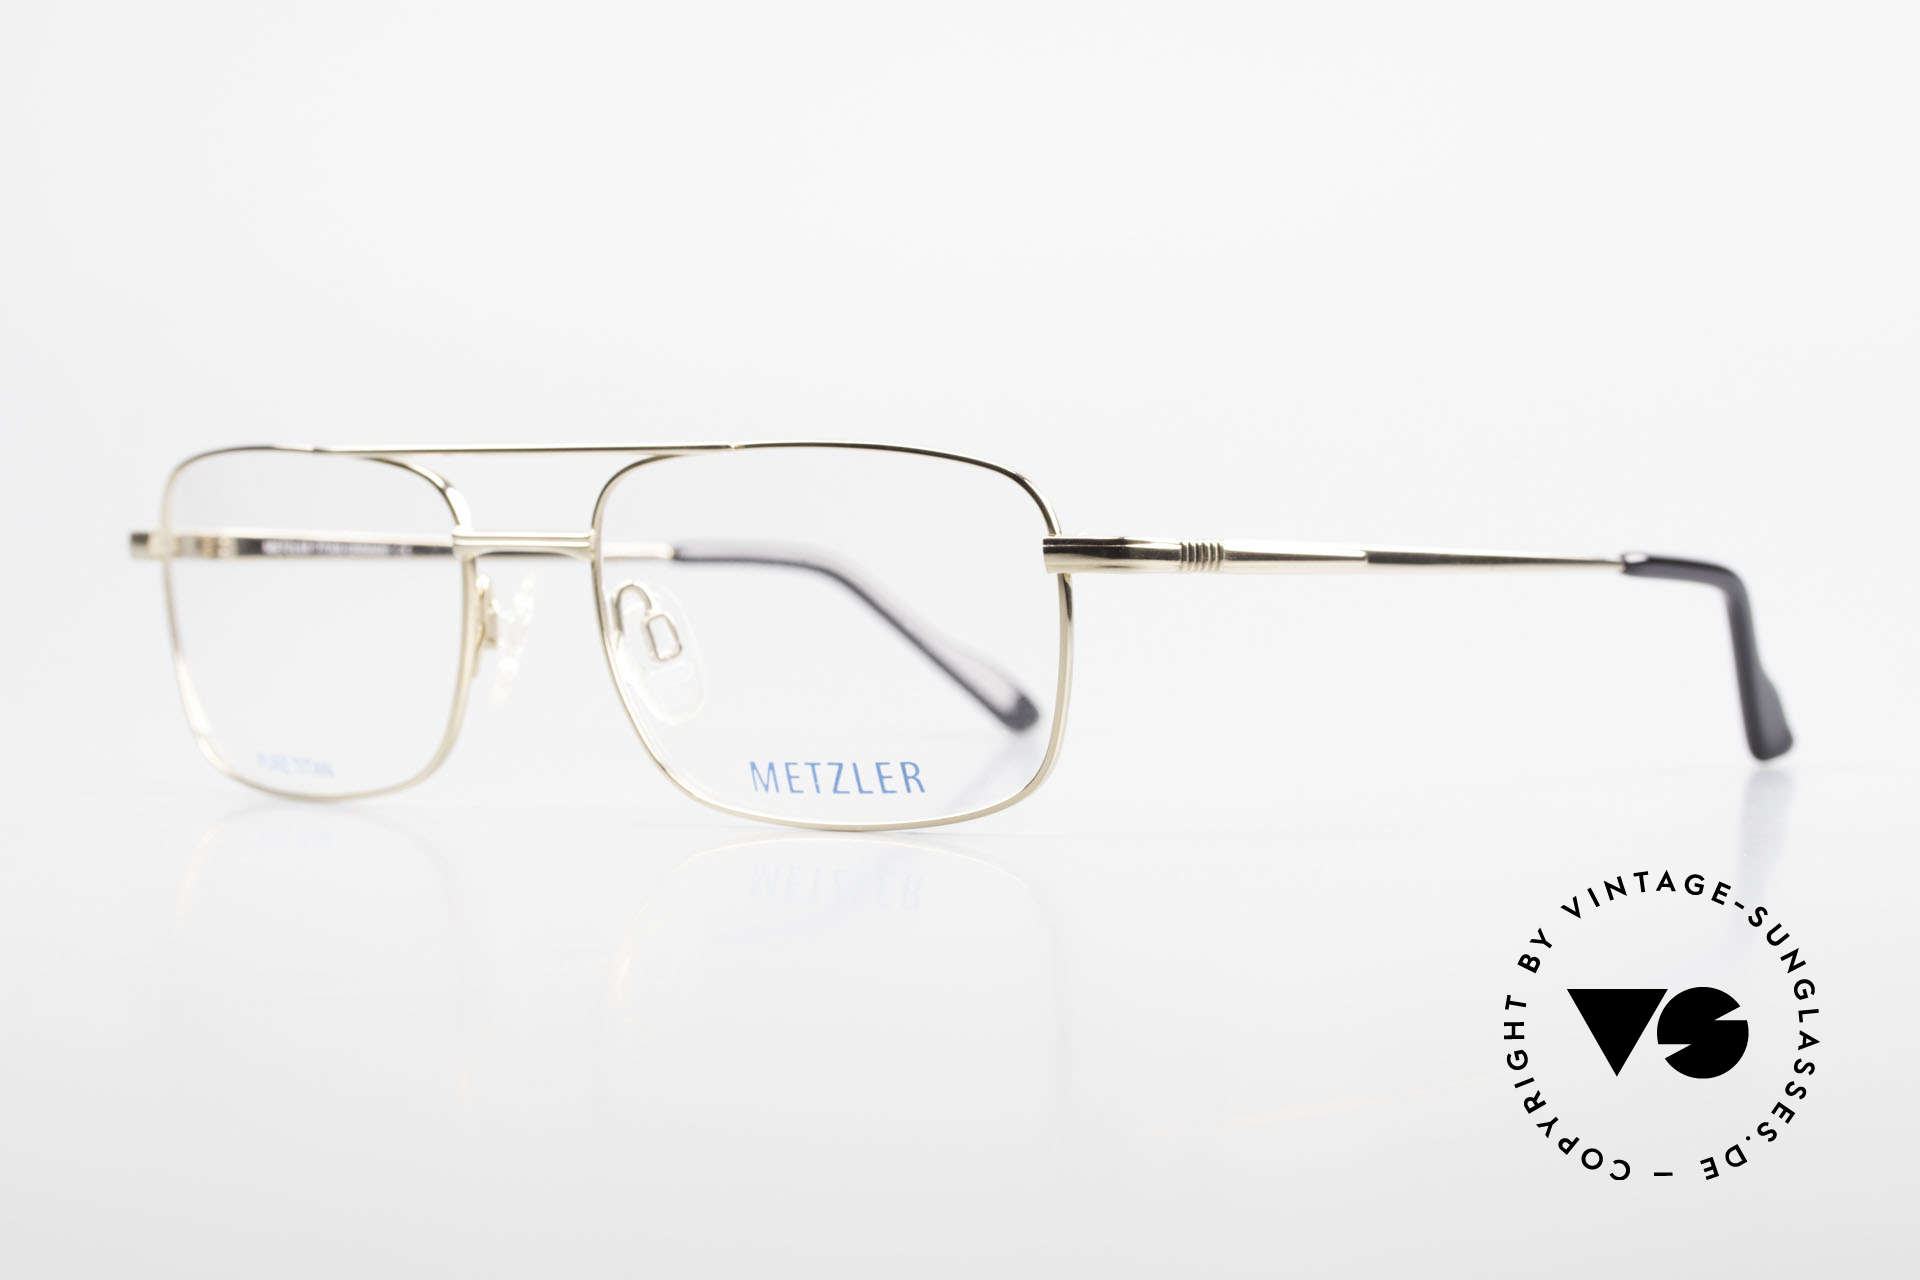 Metzler 1680 90's Titan Frame Gold Plated, 'made in Germany' quality: gold-plated titan frame, Made for Men